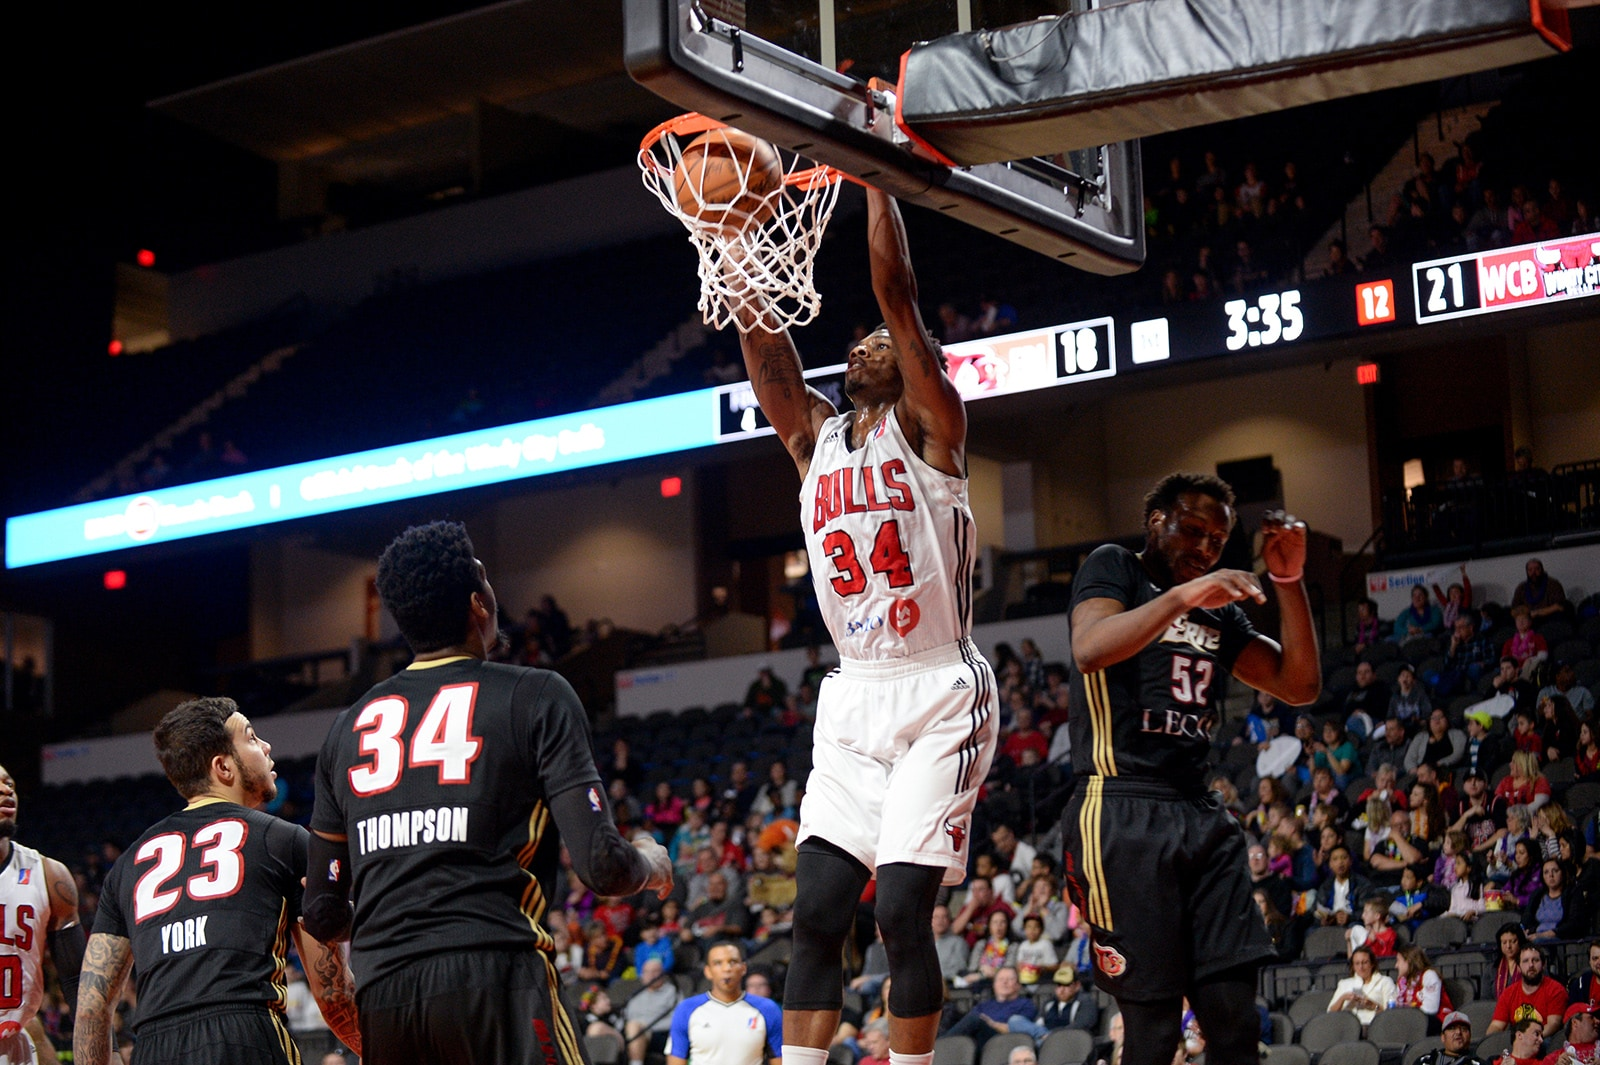 Alfonzo McKinnie Playing for the Windy city Bulls